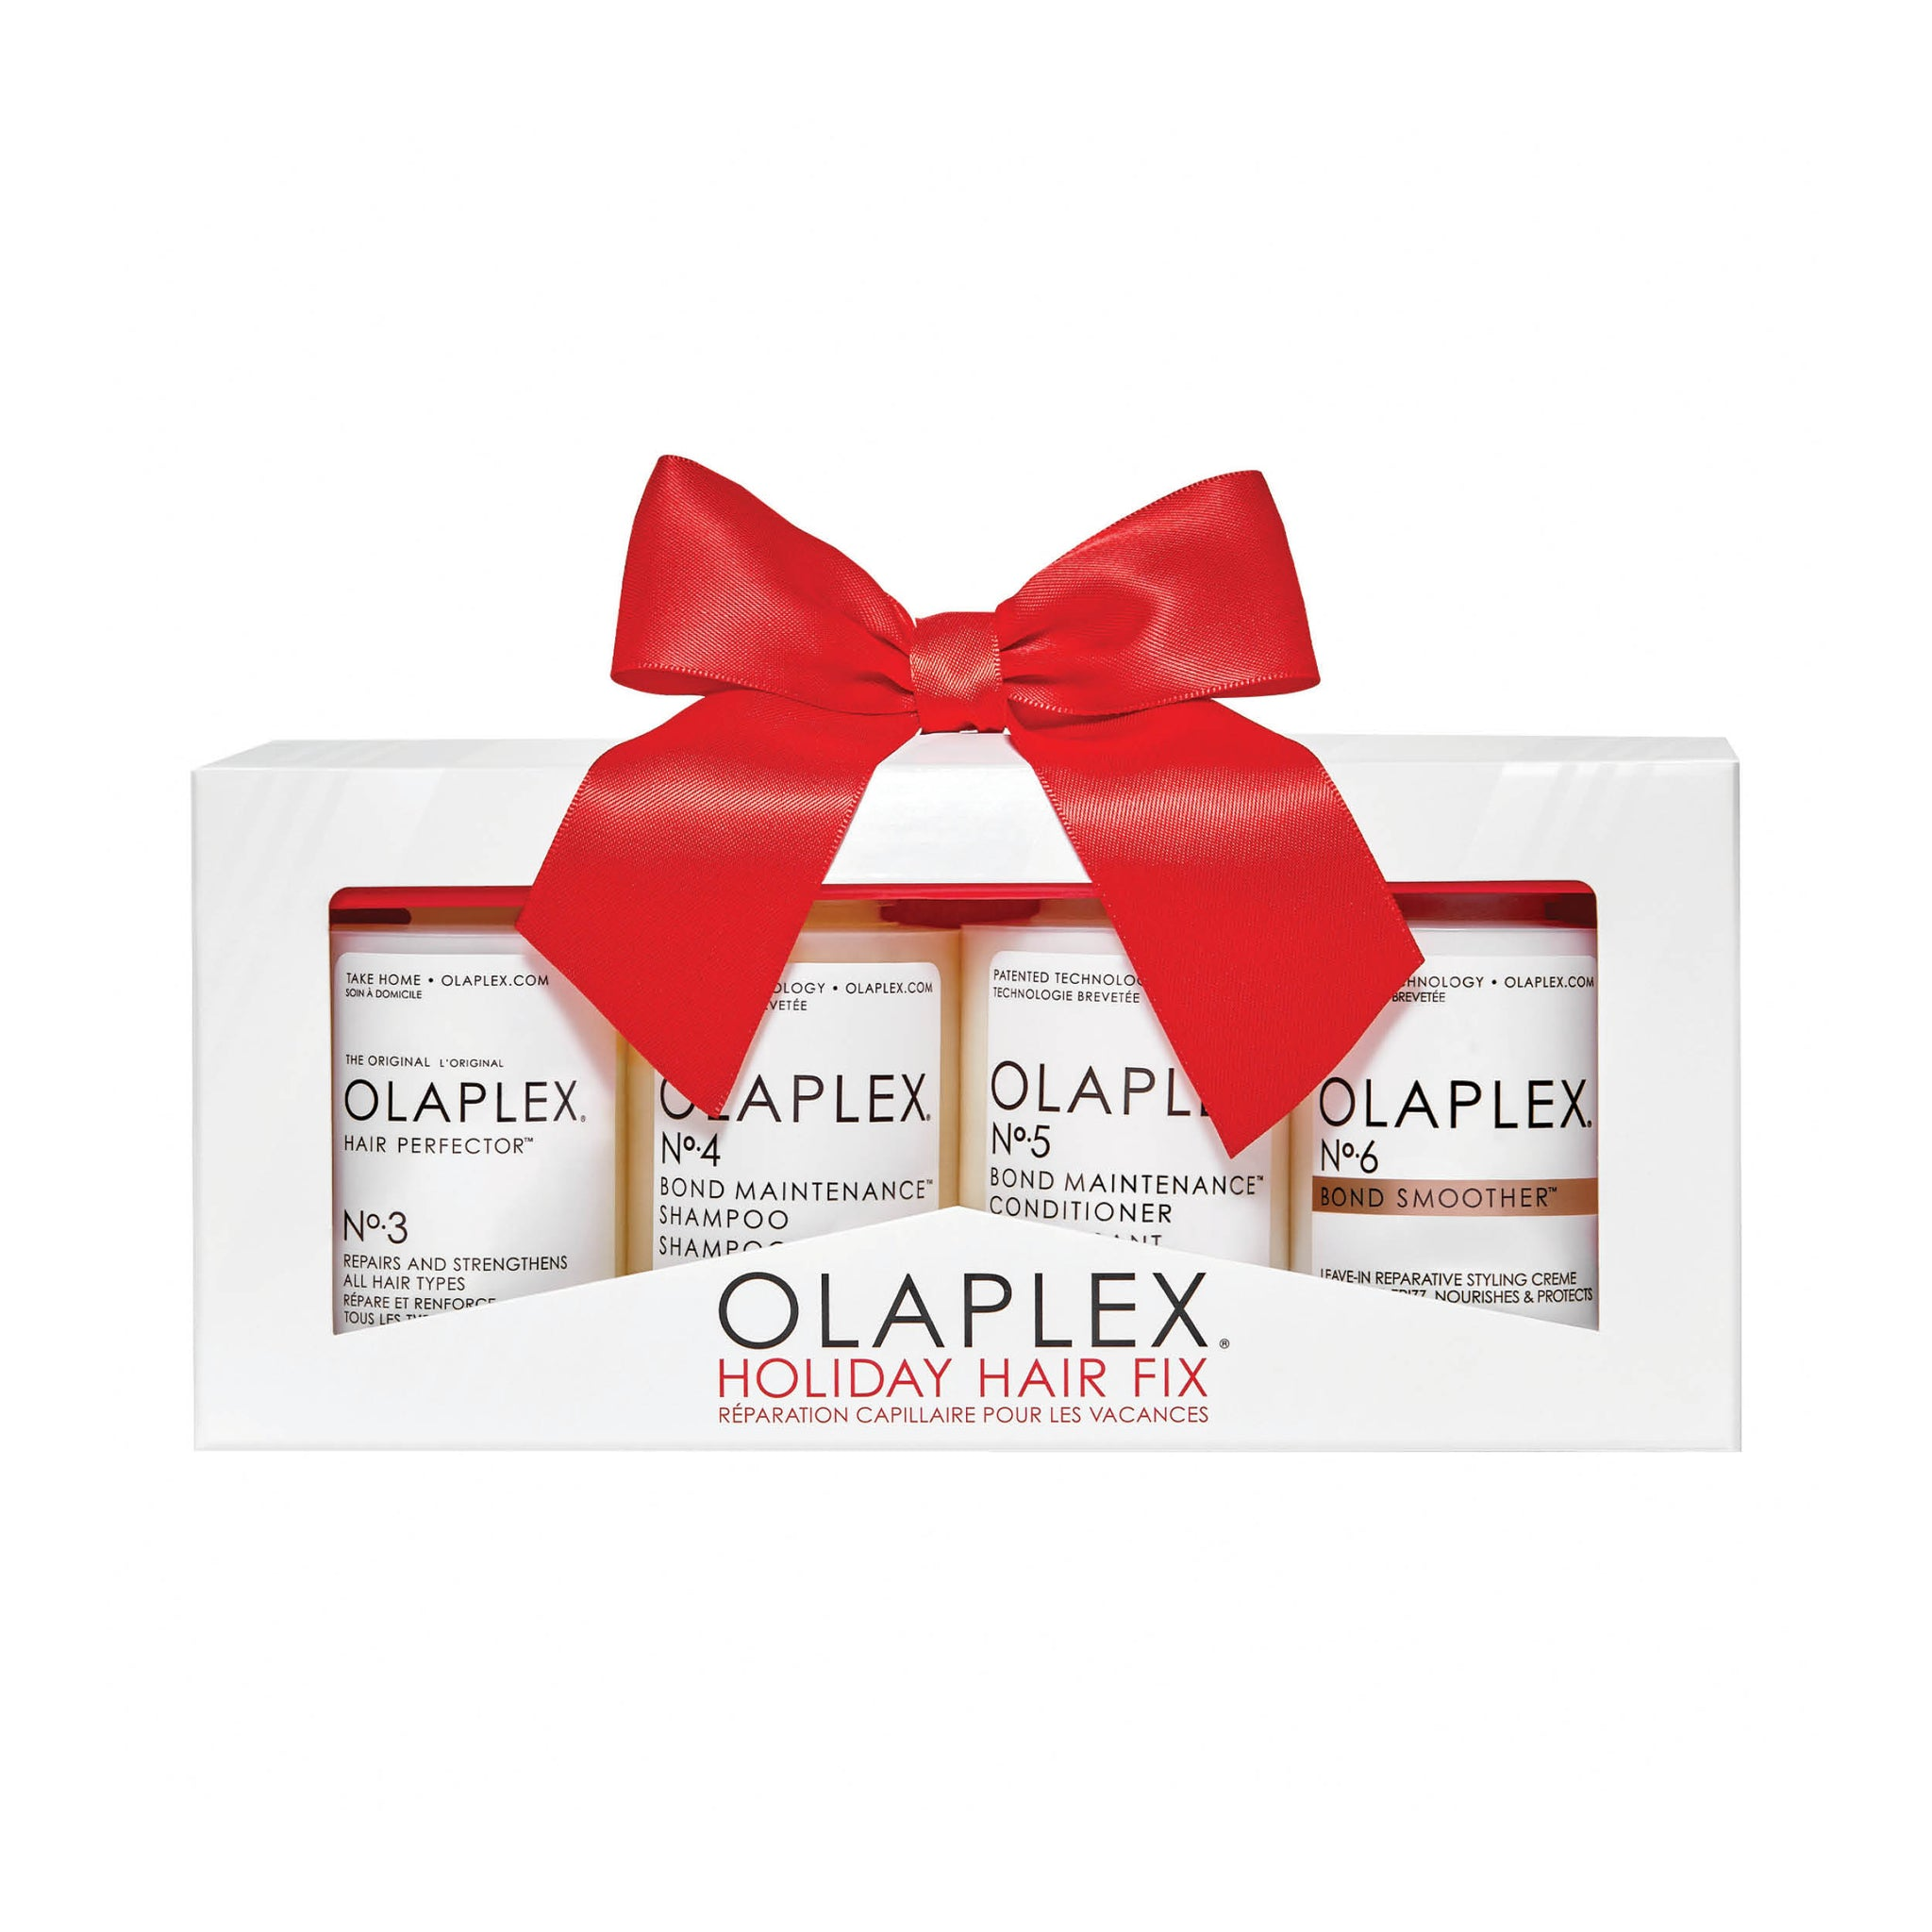 Olaplex Holiday Hair Fix Gift Set